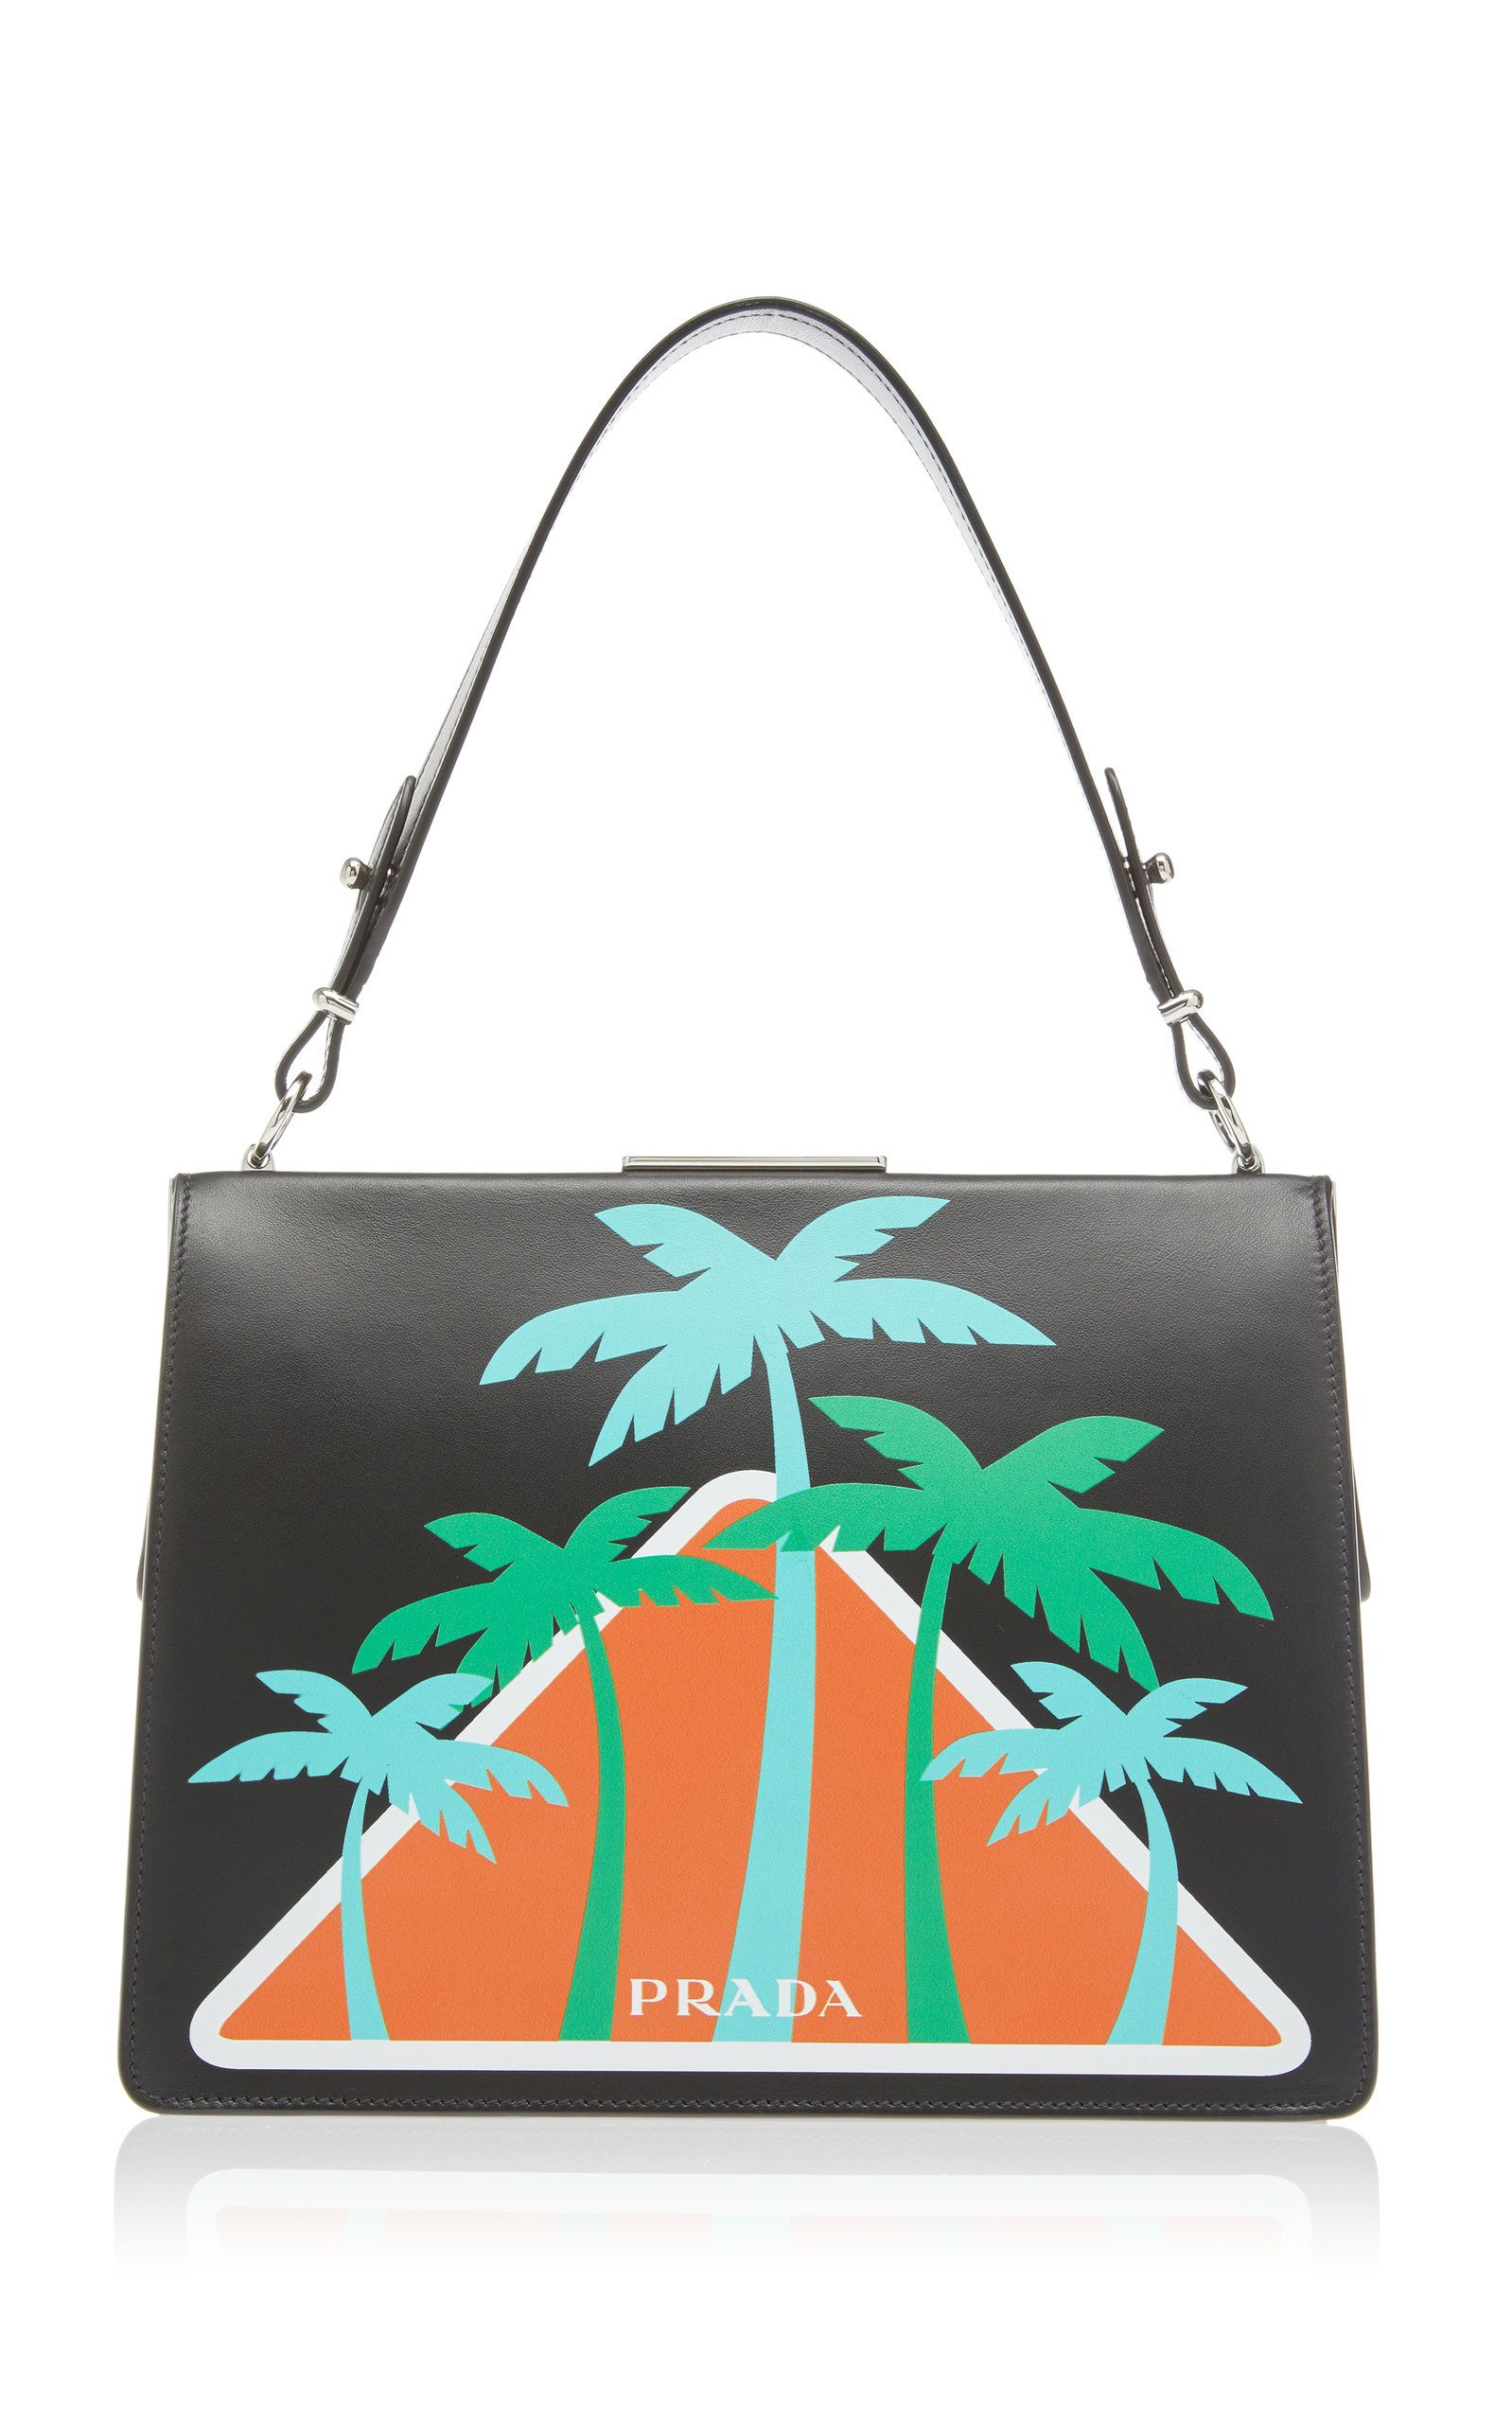 3b7538729a58 PRADA CITY CALF TOP HANDLE WITH PALM TREES. #prada #bags #hand bags ...